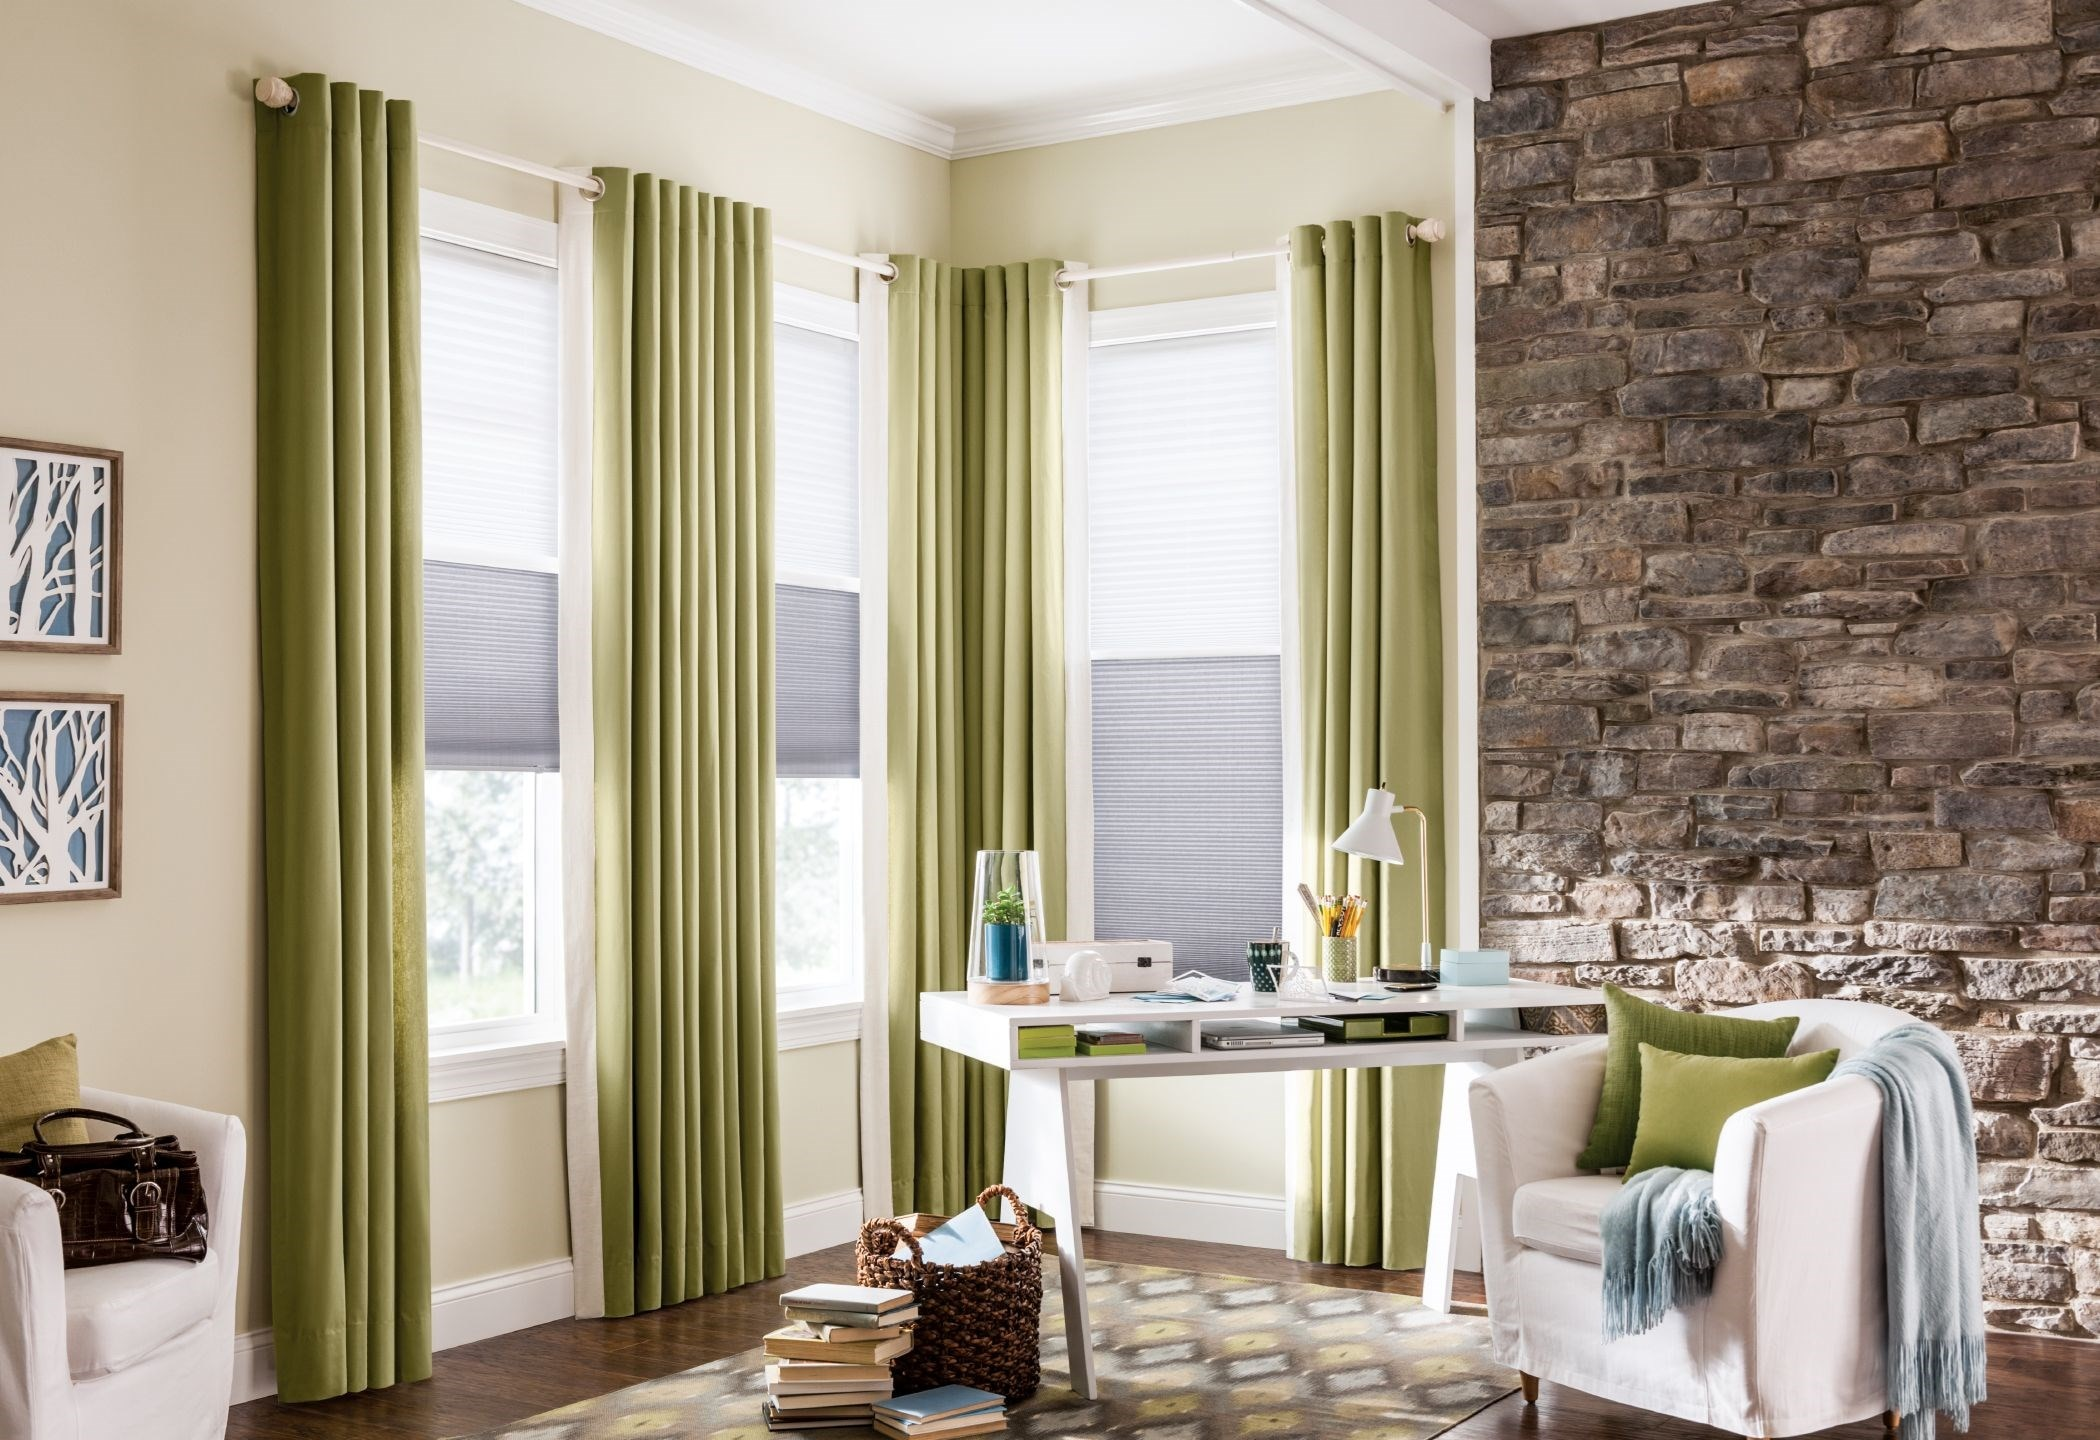 94 inch wide blinds bali diamondcell light filtering cellular shade find top down bottom up shades at americanblindscom